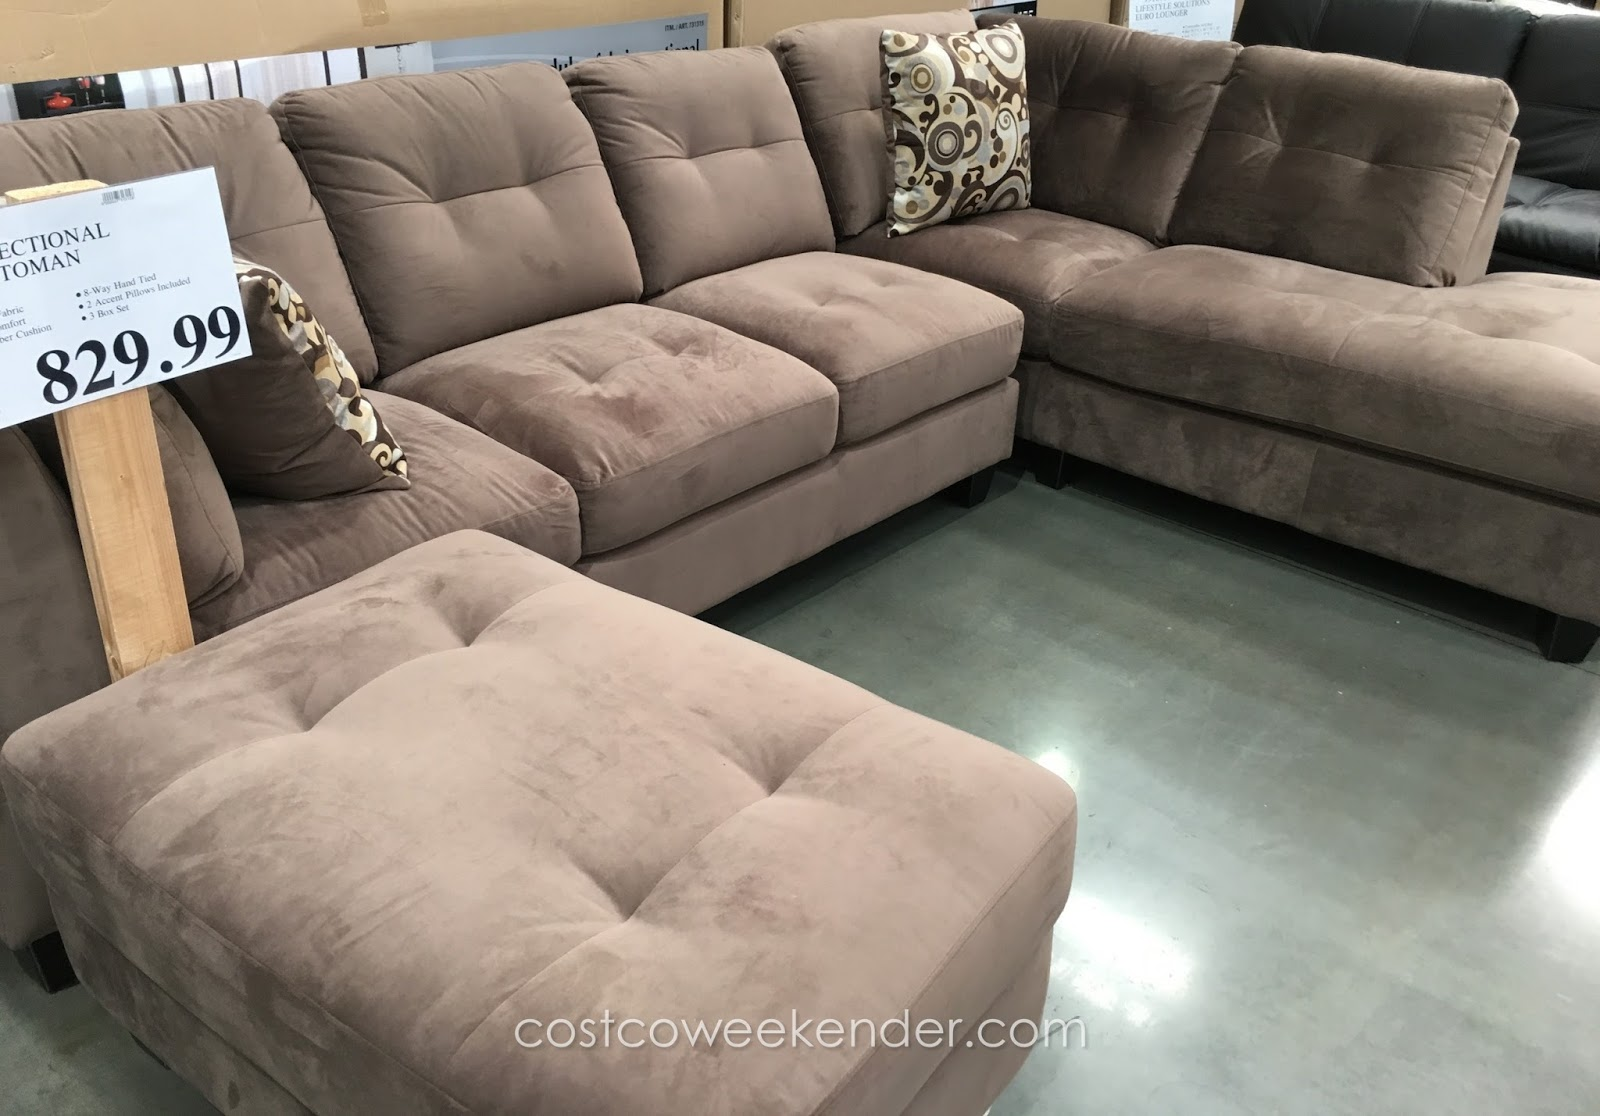 Mstar 3 piece modular fabric sectional with ottoman for 3 piece sectional sofa costco